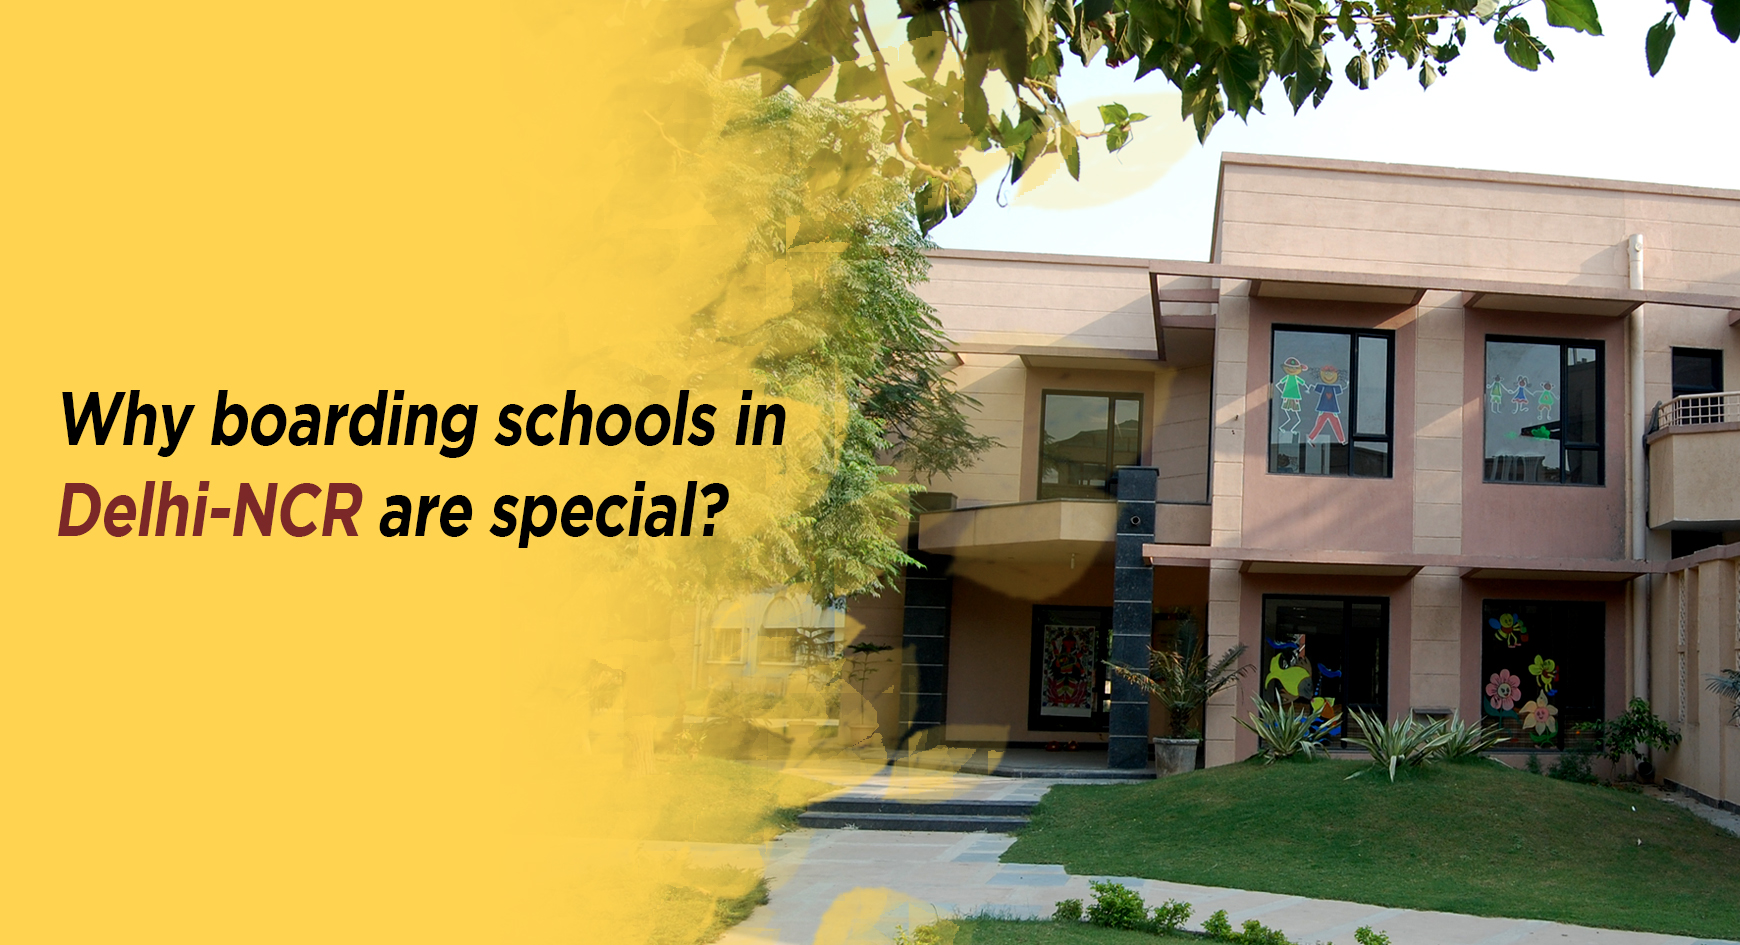 Why boarding schools in Delhi-NCR are special?